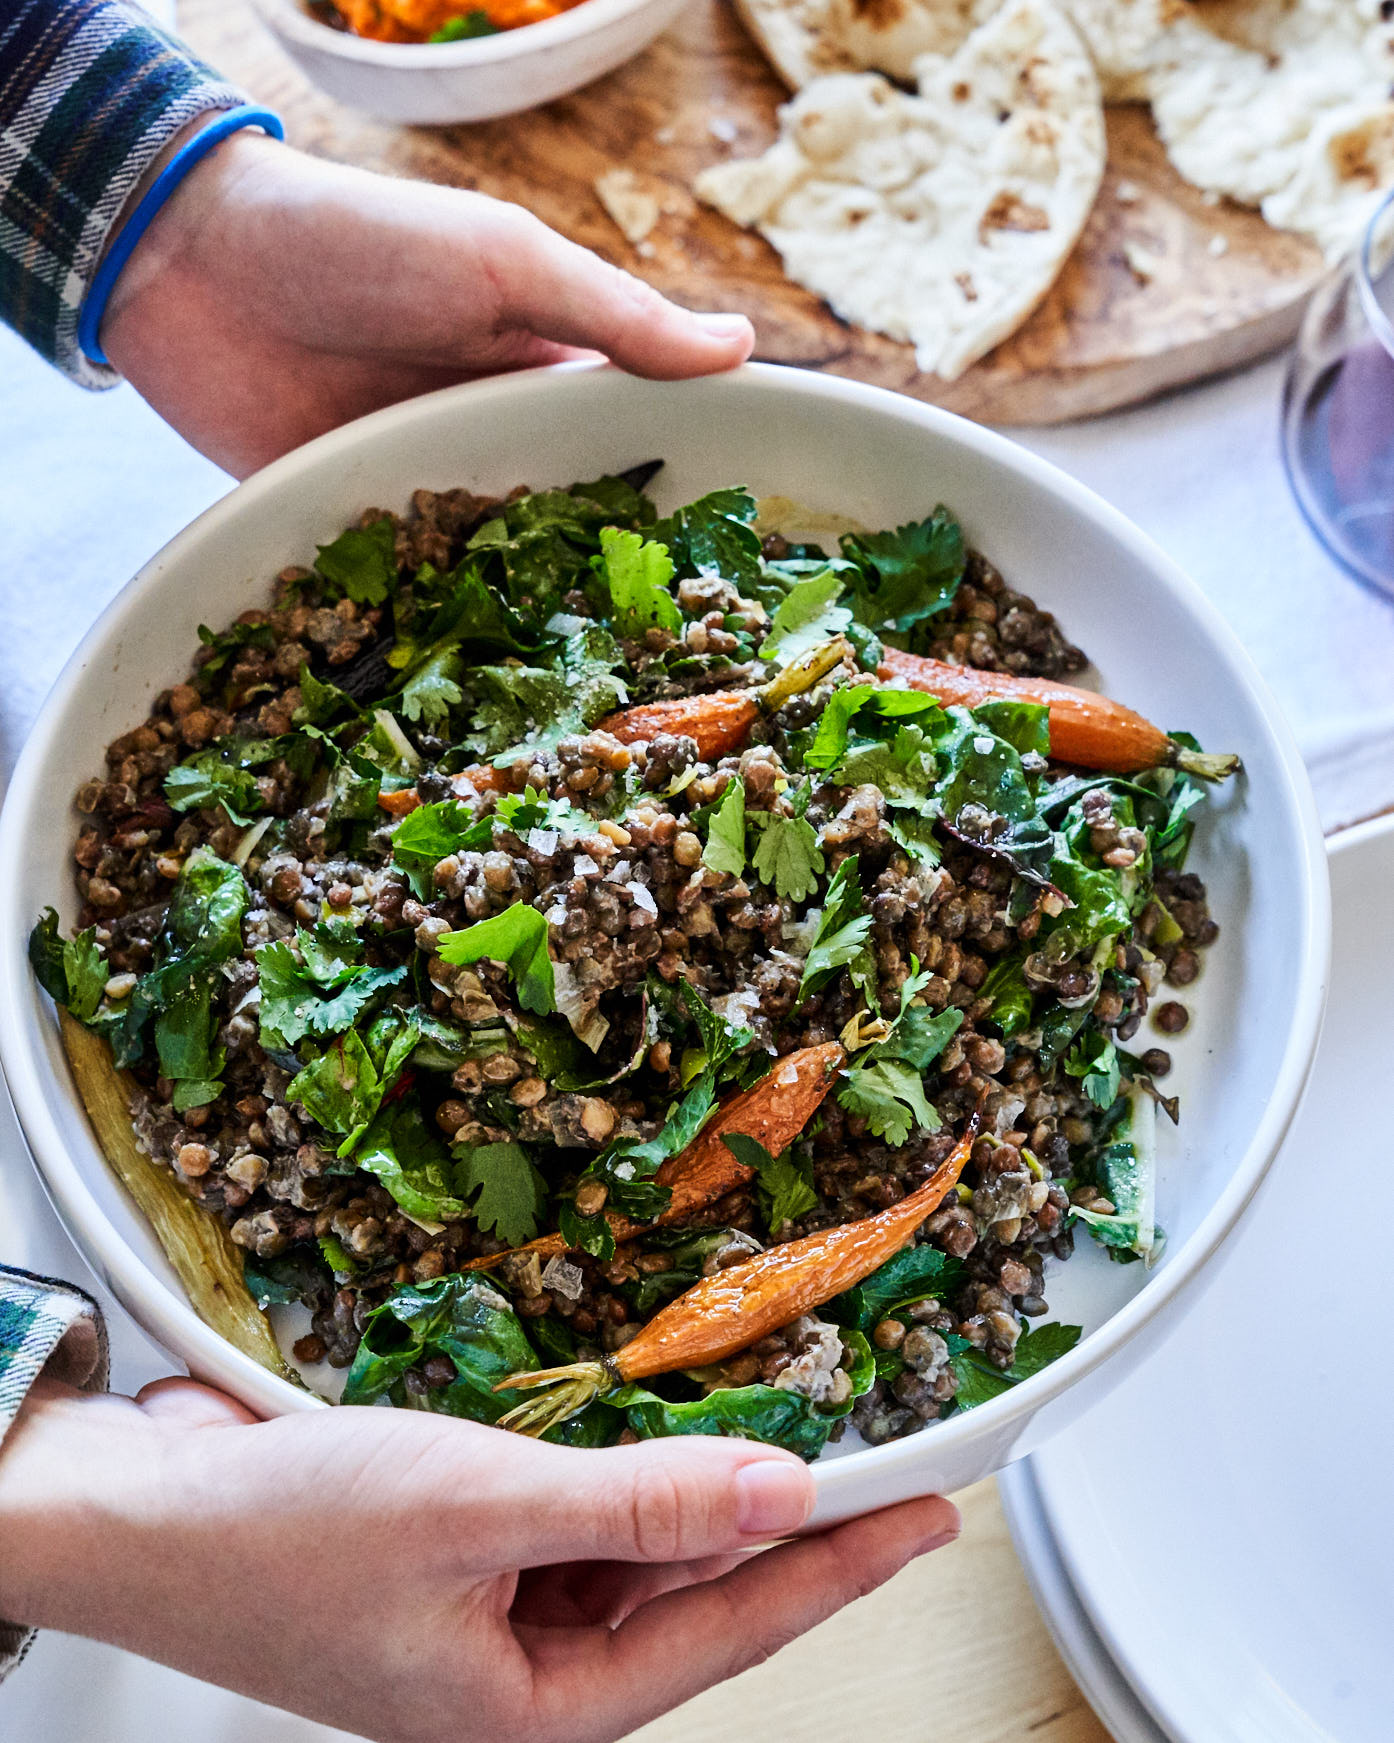 Warm+Lentil+Roasted+Carrot+Herb+Salad